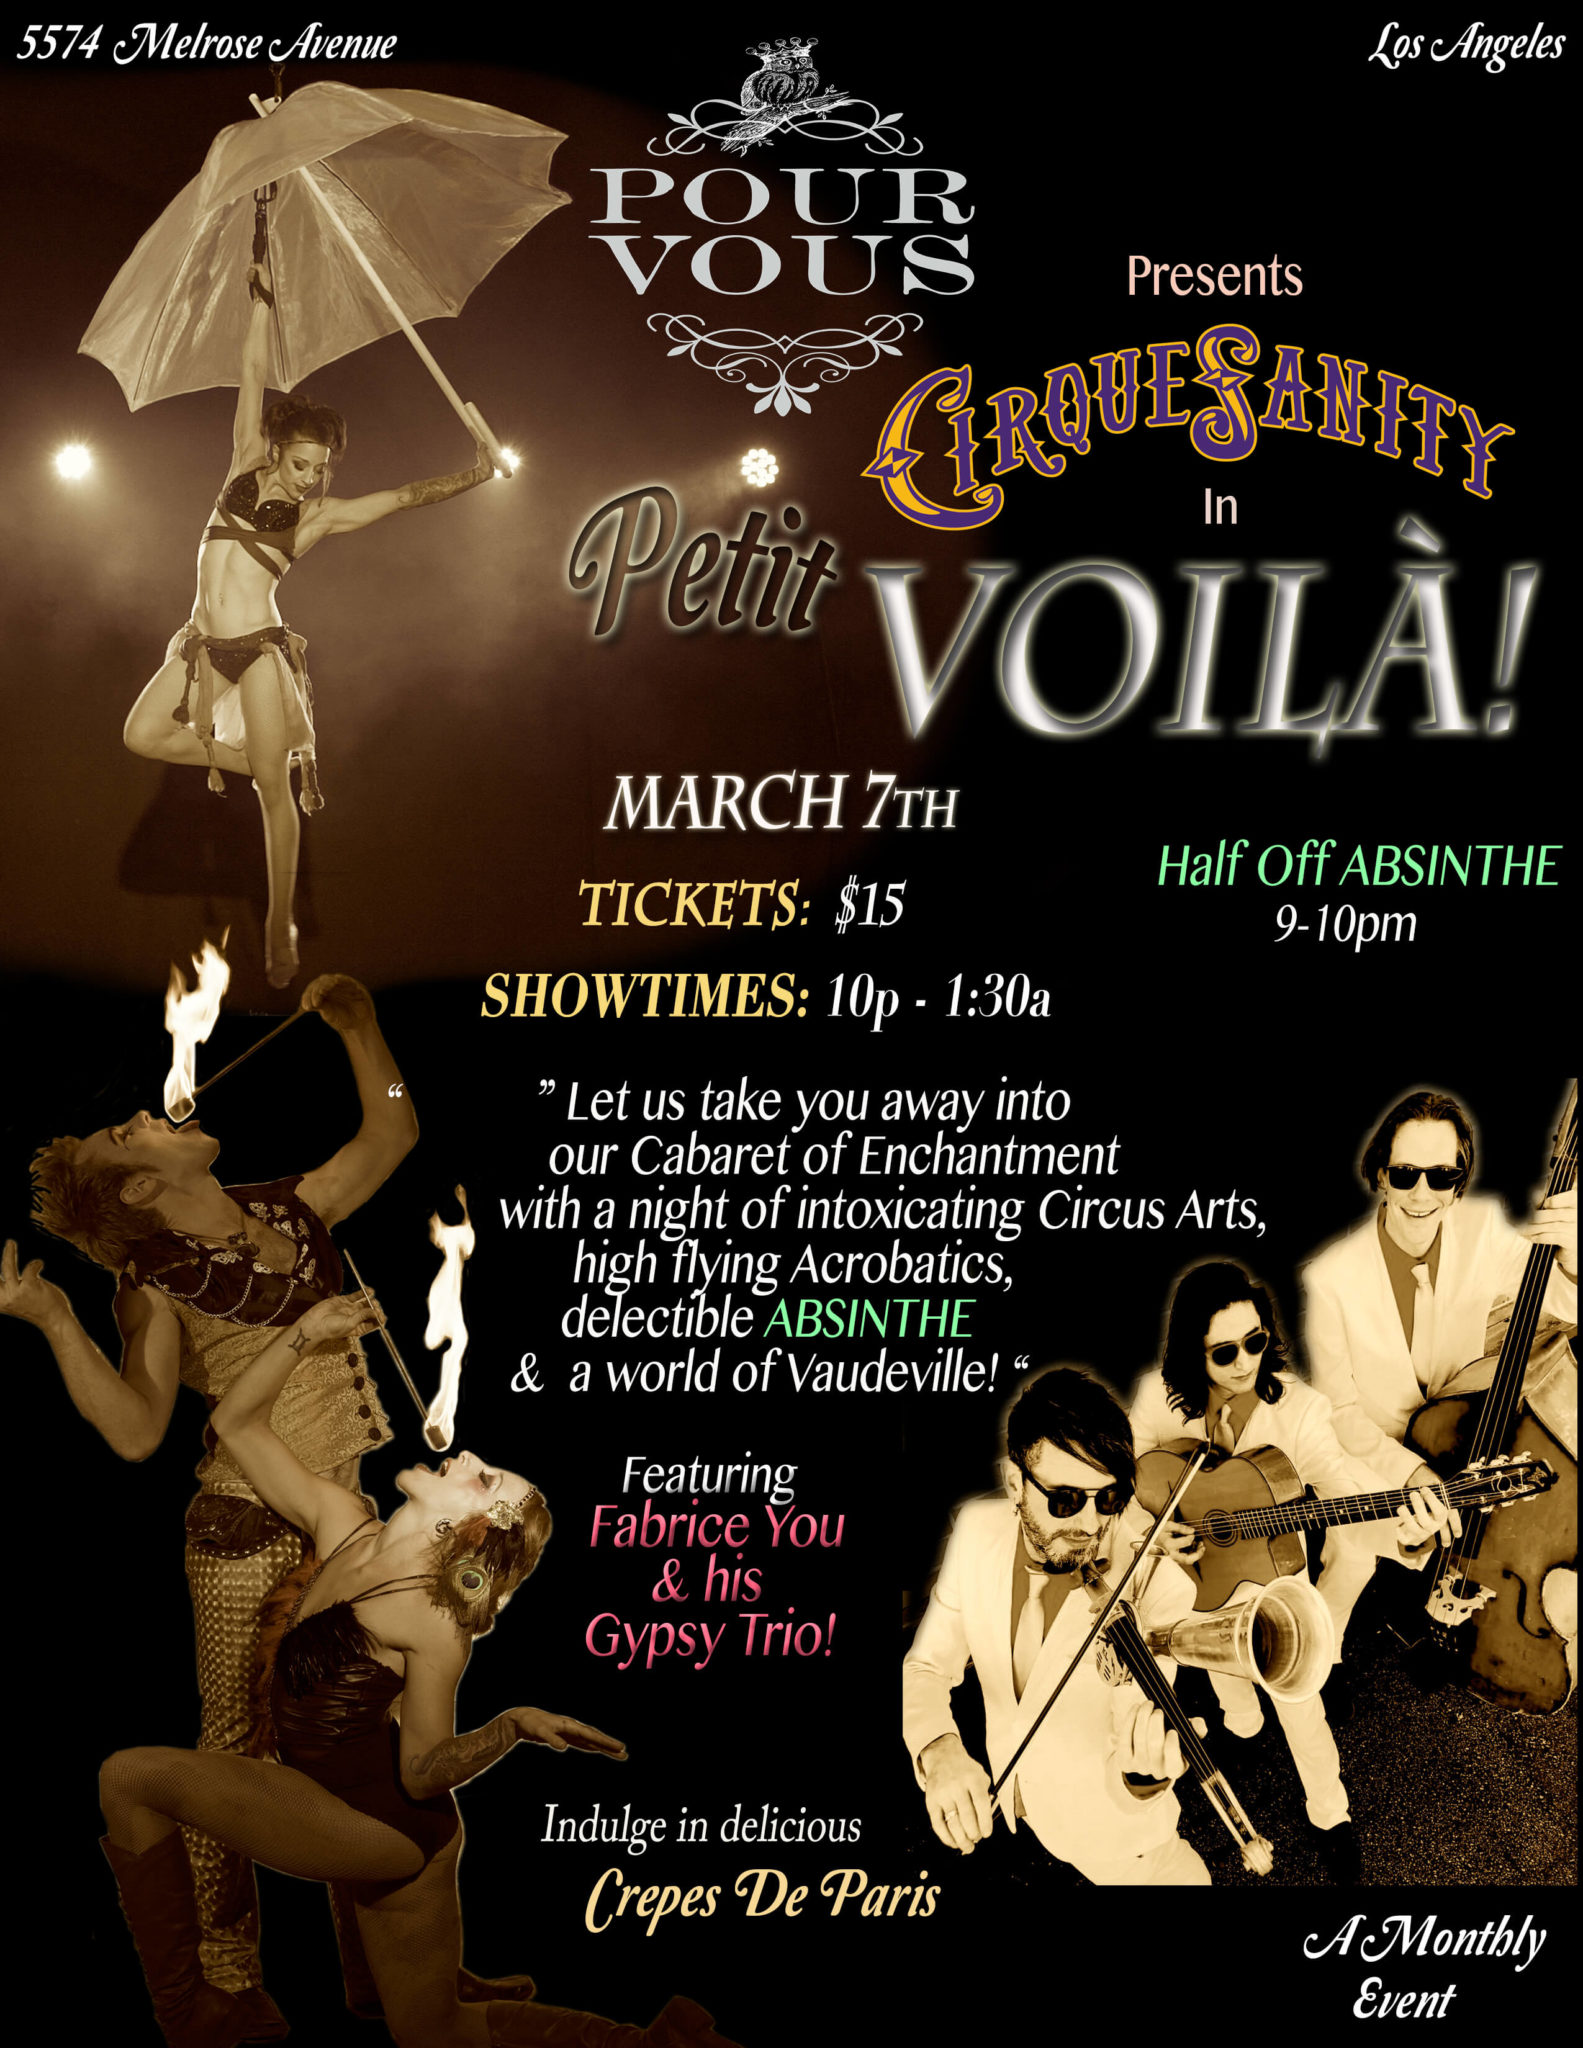 "LA's hottest new nightlife show! CirqueSanity presents ""Petit Voila!"" Residency at Pour Vous in Melrose"